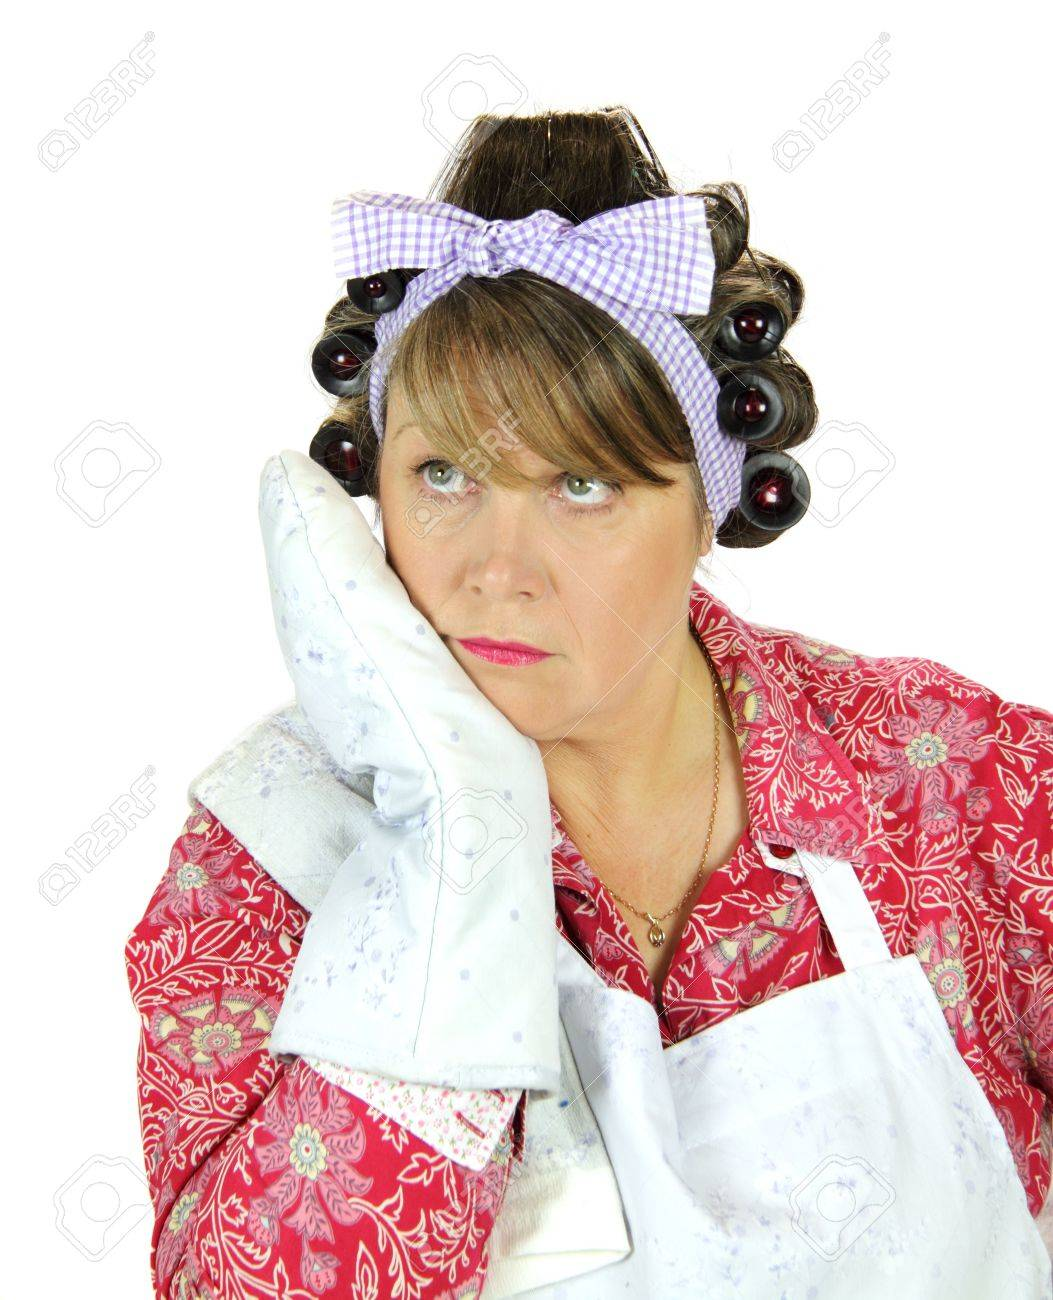 Terminally bored housewife leans on her oven mit dreaming of being somewhere else. Stock Photo - 5501205